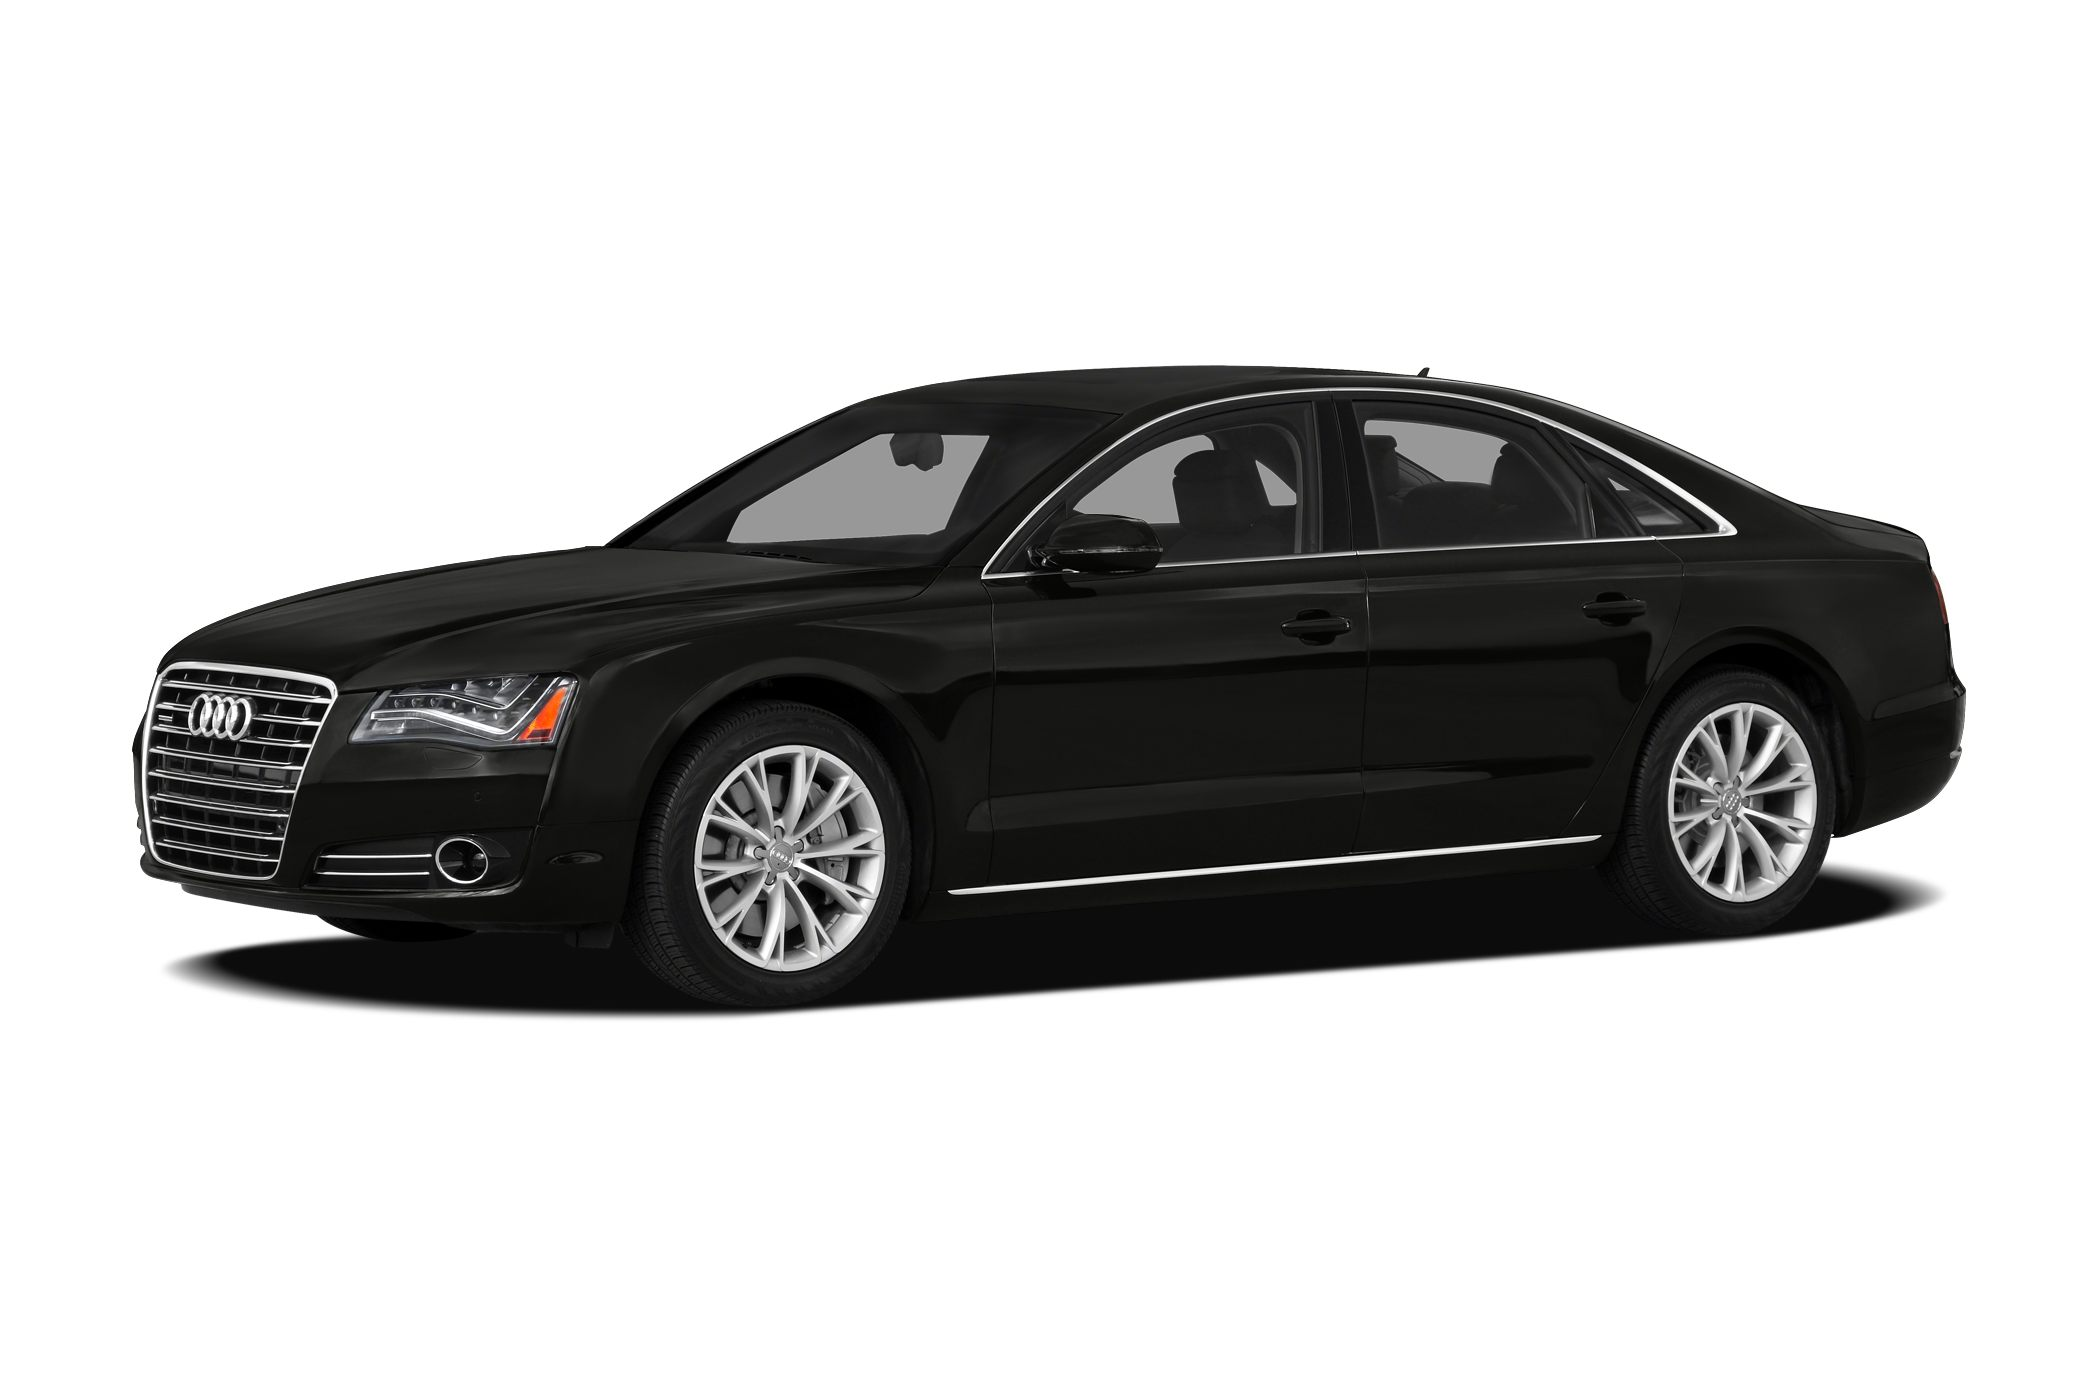 2013 Audi A8 30T LONG BODY A8 LOW MILES UNDER WARRANTY HEATED SEATS UPGRADED INTERIOR THIS A